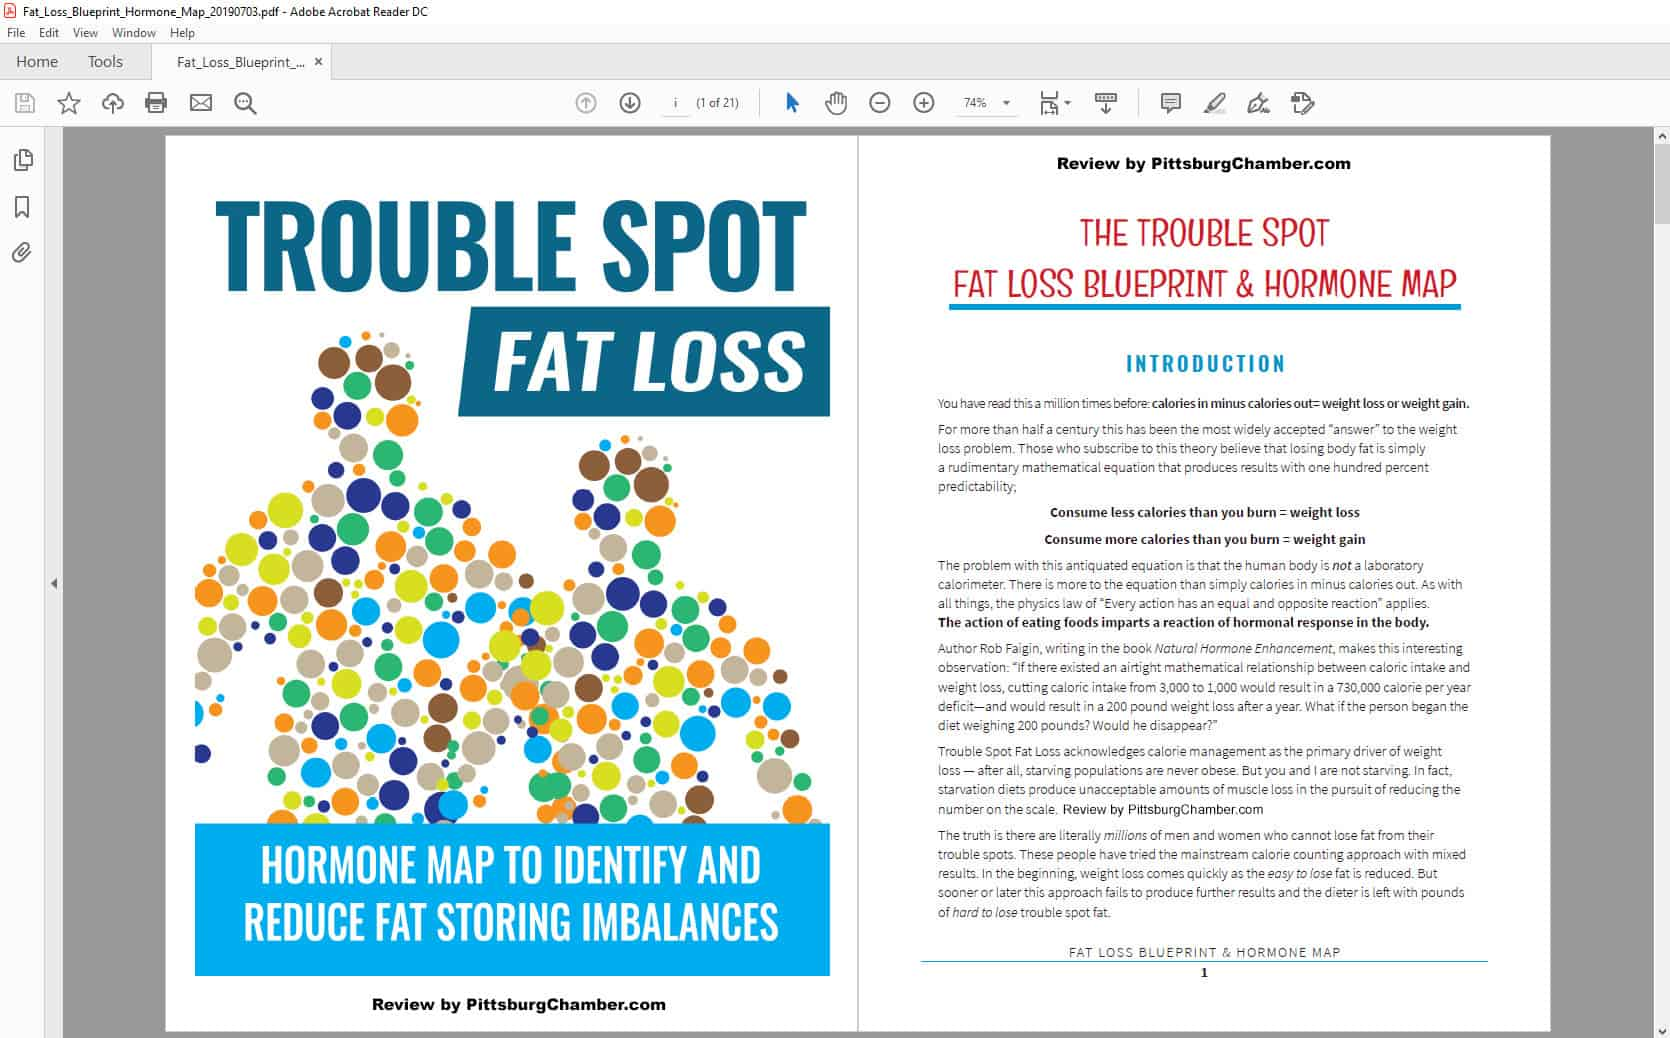 Trouble Spot Fat Loss System Table of Contents